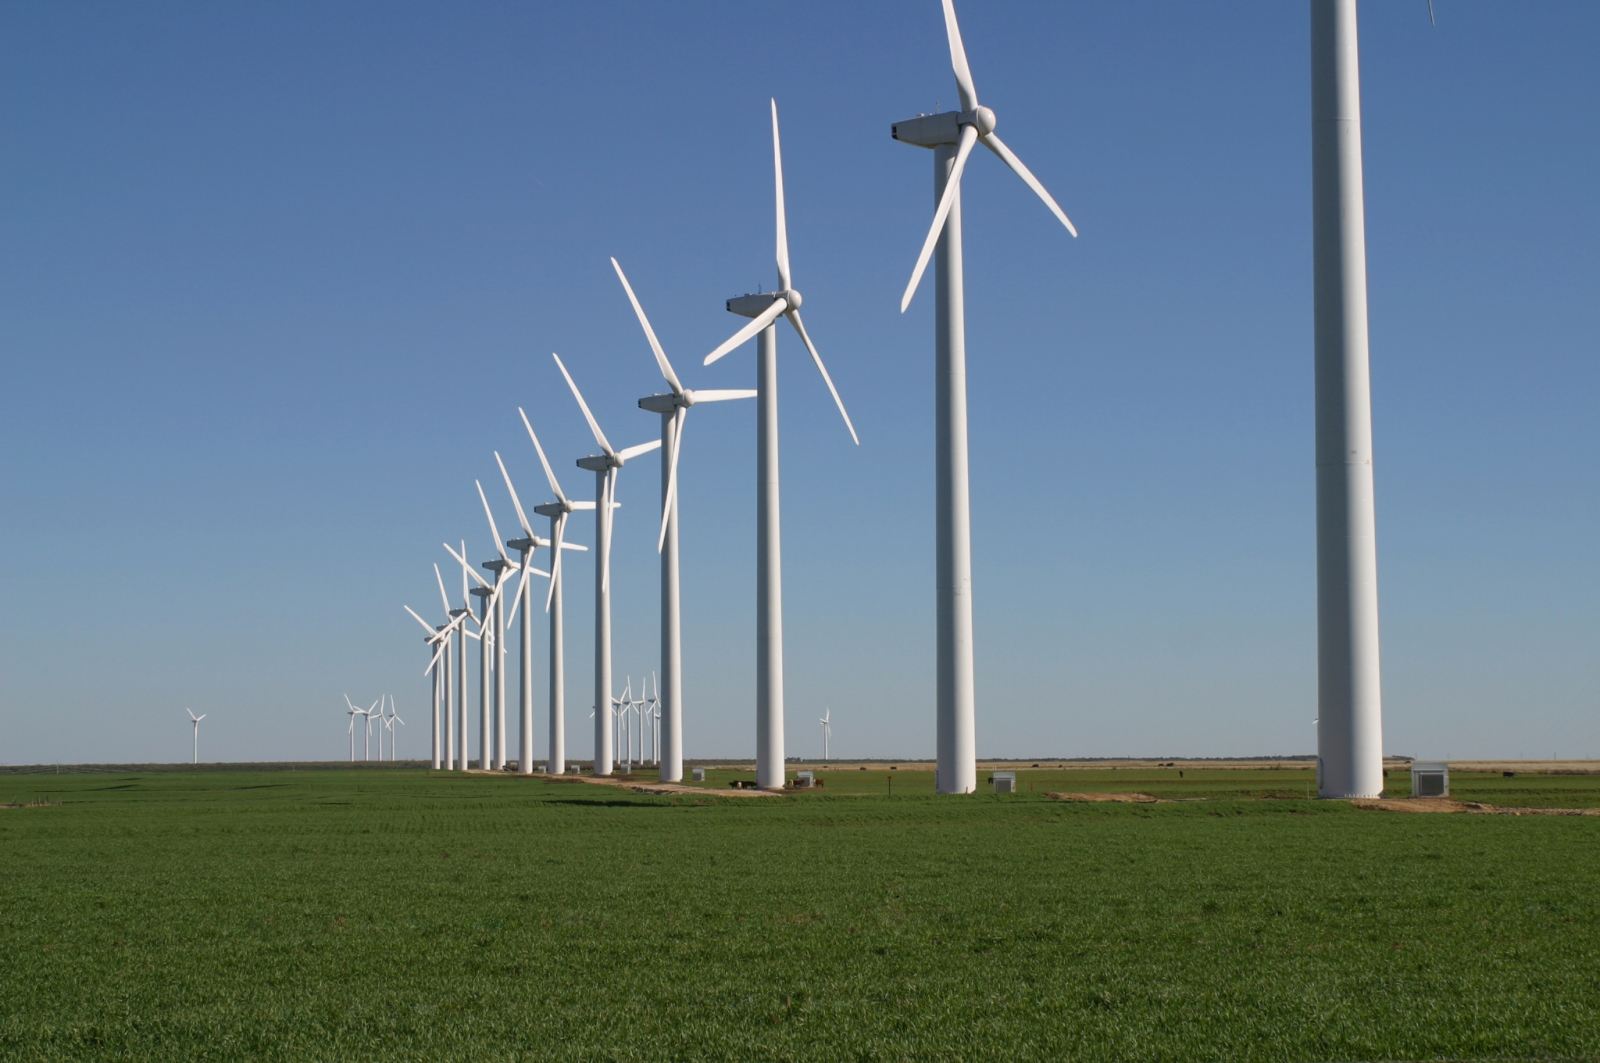 Residents living near to wind turbines report annoyances for their quality of life related to the presence of turbines. Photo: National Observer